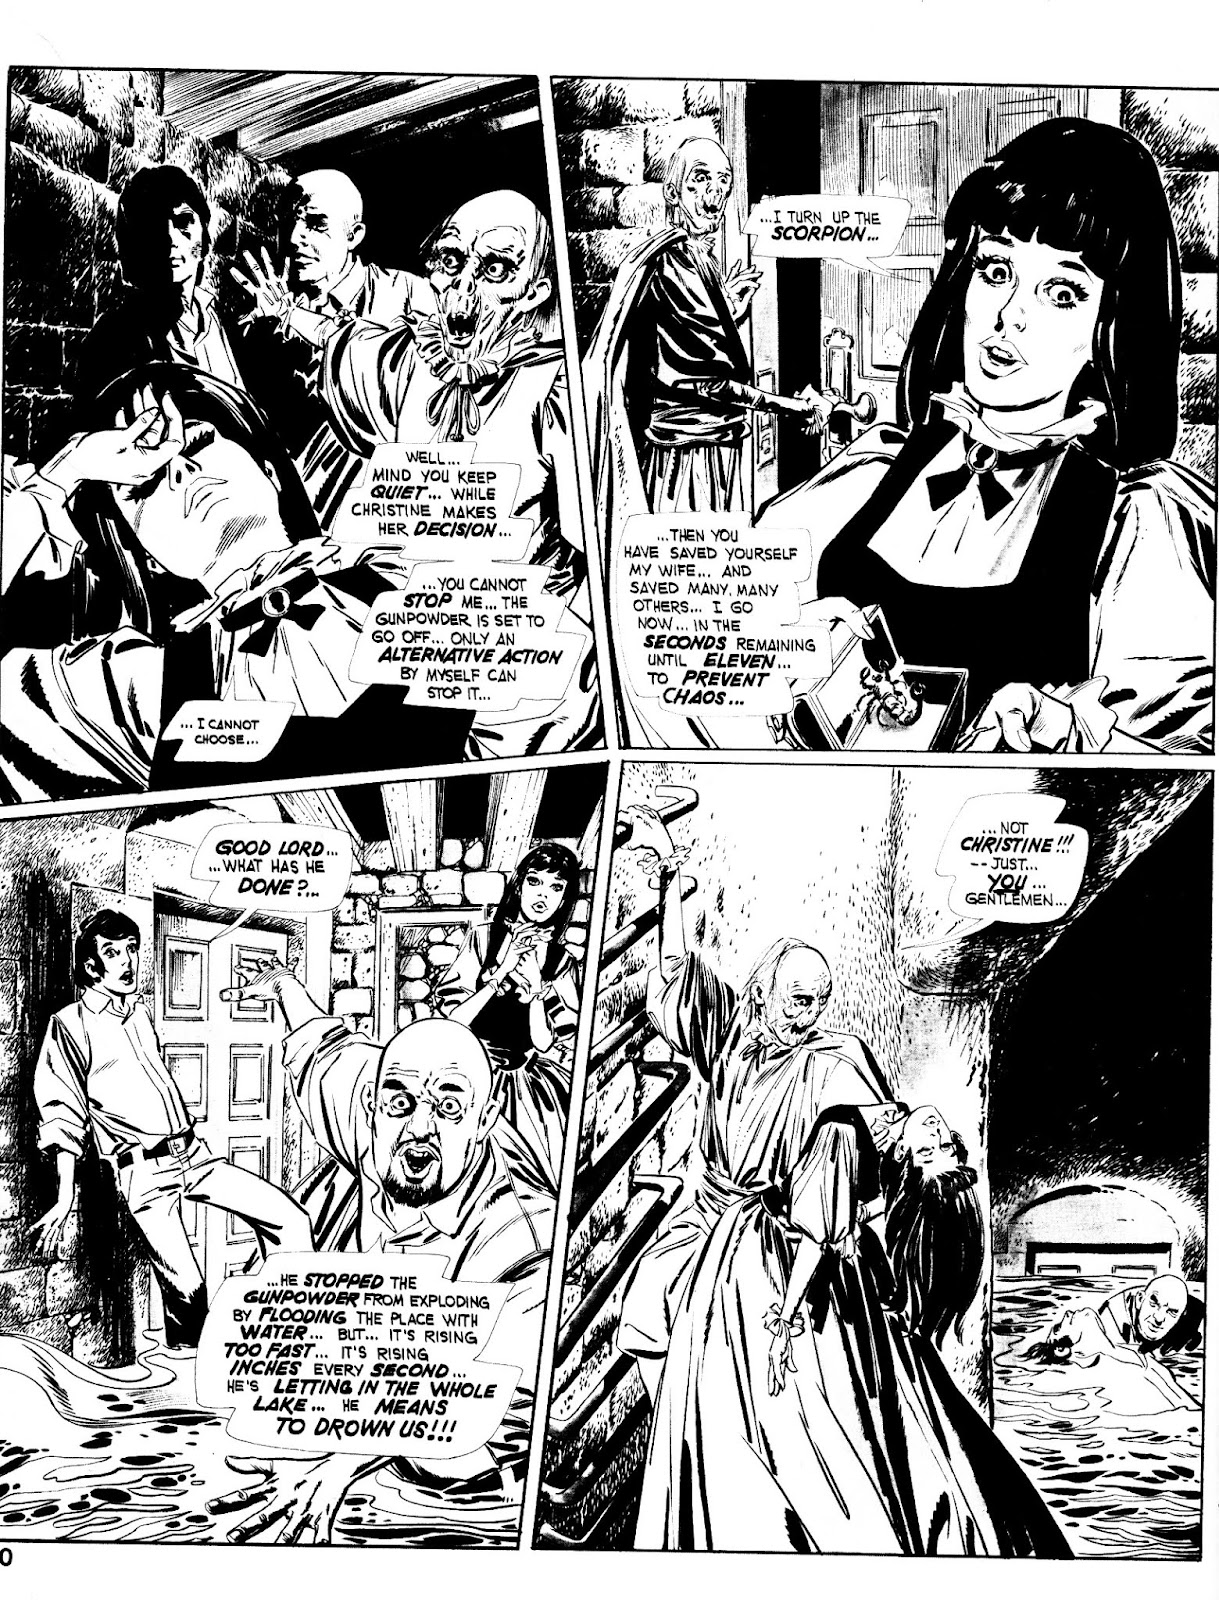 Scream (1973) issue 3 - Page 20